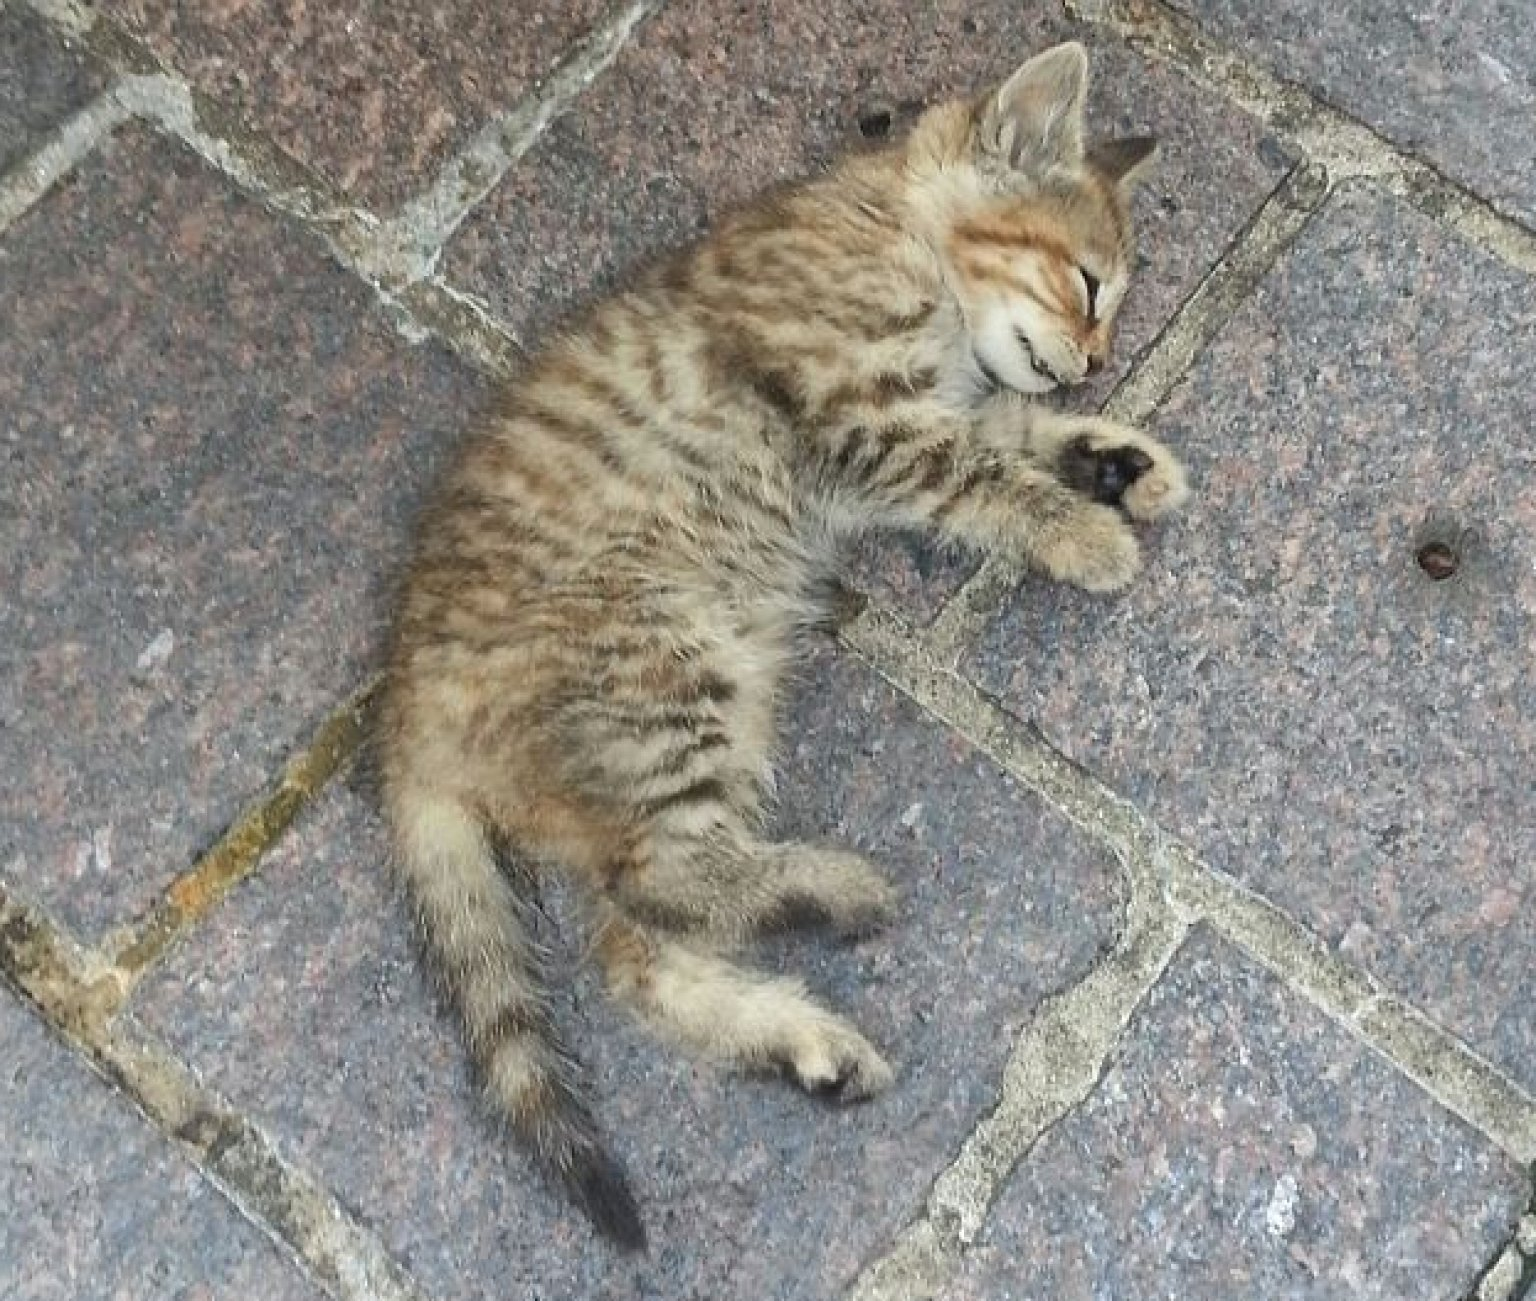 Kitten Dies After Being Thrown At Animal Rights Activists